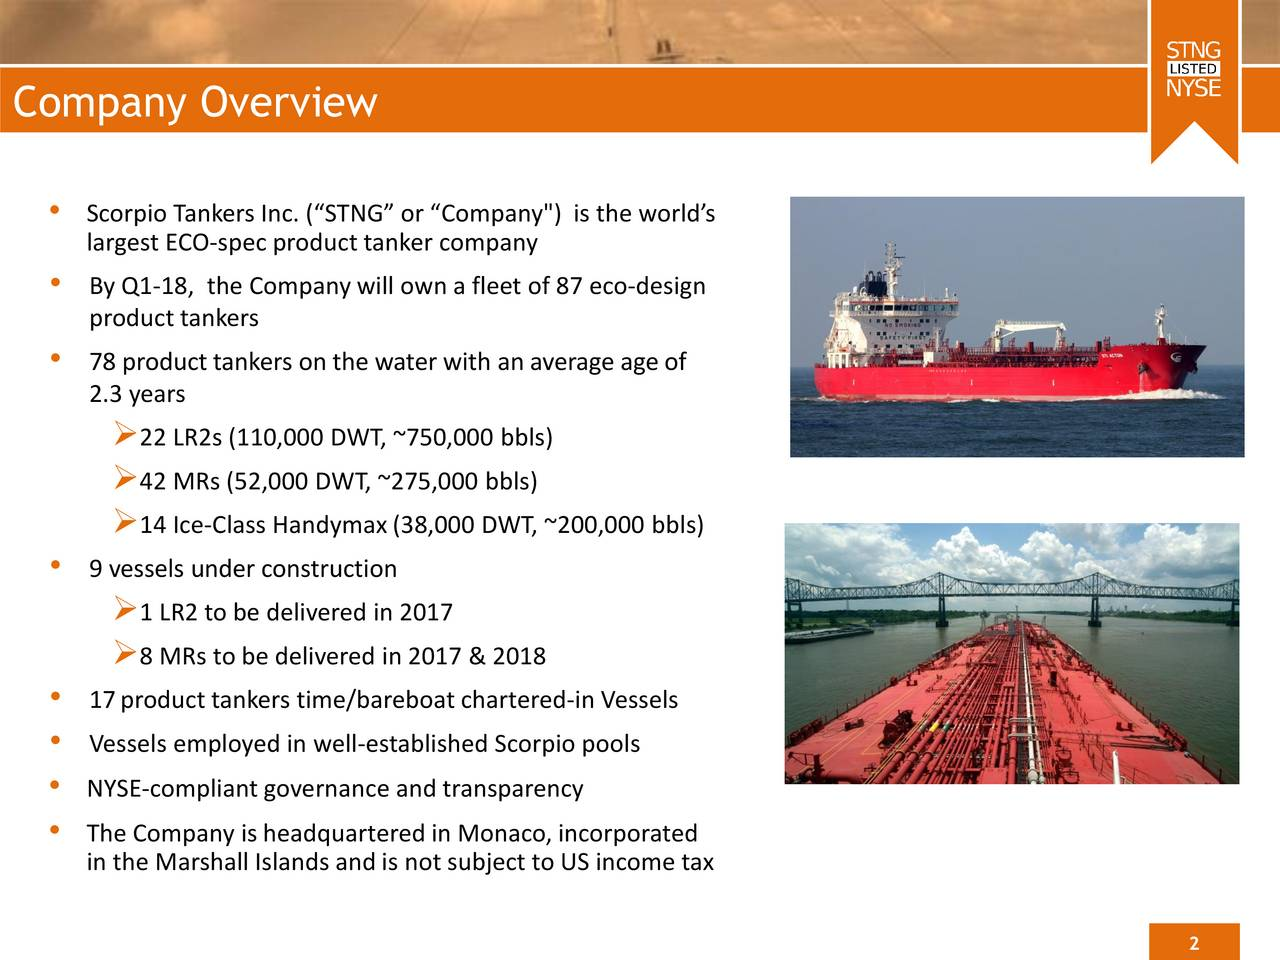 """Scorpio Tankers Inc. (STNG or Company"""") is the worlds largest ECO-spec product tanker company By Q1-18, the Company will own a fleet of 87 eco-design product tankers 78 product tankers on the water with an average age of 2.3 years 22 LR2s (110,000 DWT, ~750,000 bbls) 42 MRs (52,000 DWT, ~275,000 bbls) 14 Ice-Class Handymax(38,000 DWT, ~200,000 bbls) 9 vessels under construction 1 LR2 to be delivered in 2017 8 MRs to be delivered in 2017 & 2018 17product tankers time/bareboat chartered-in Vessels Vessels employed in well-established Scorpio pools NYSE-compliant governance and transparency The Company is headquartered in Monaco, incorporated in the Marshall Islands and is not subject to US income tax"""